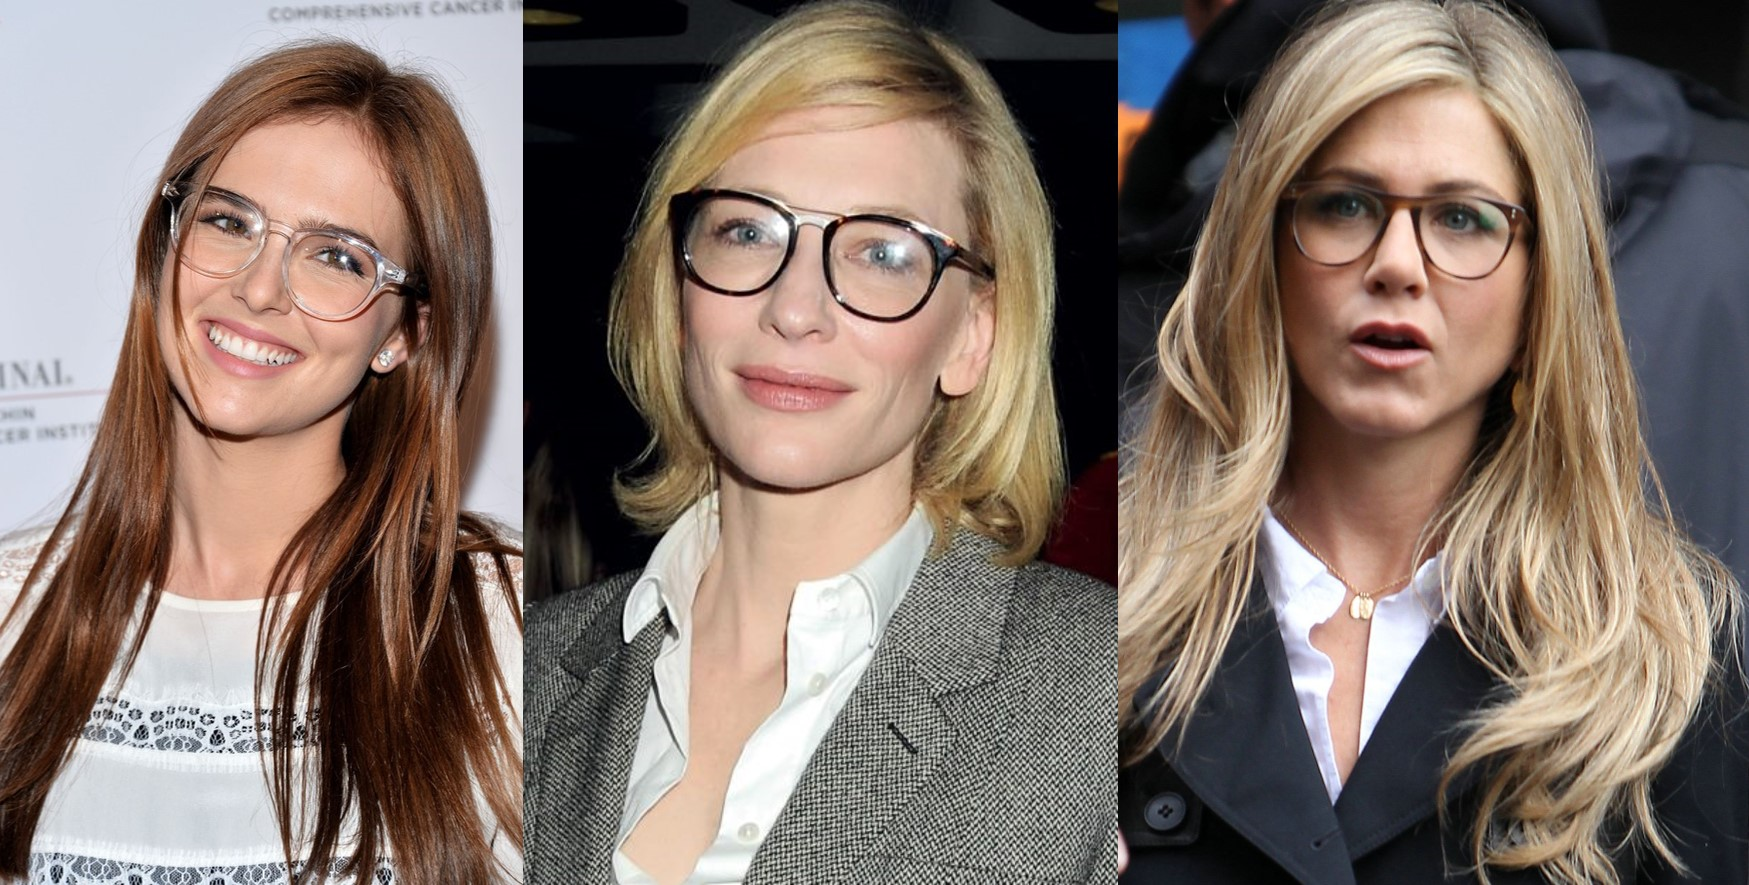 7625e4c96a02 ... glasses   set new fashion trends. View Larger Image Celebrities ...